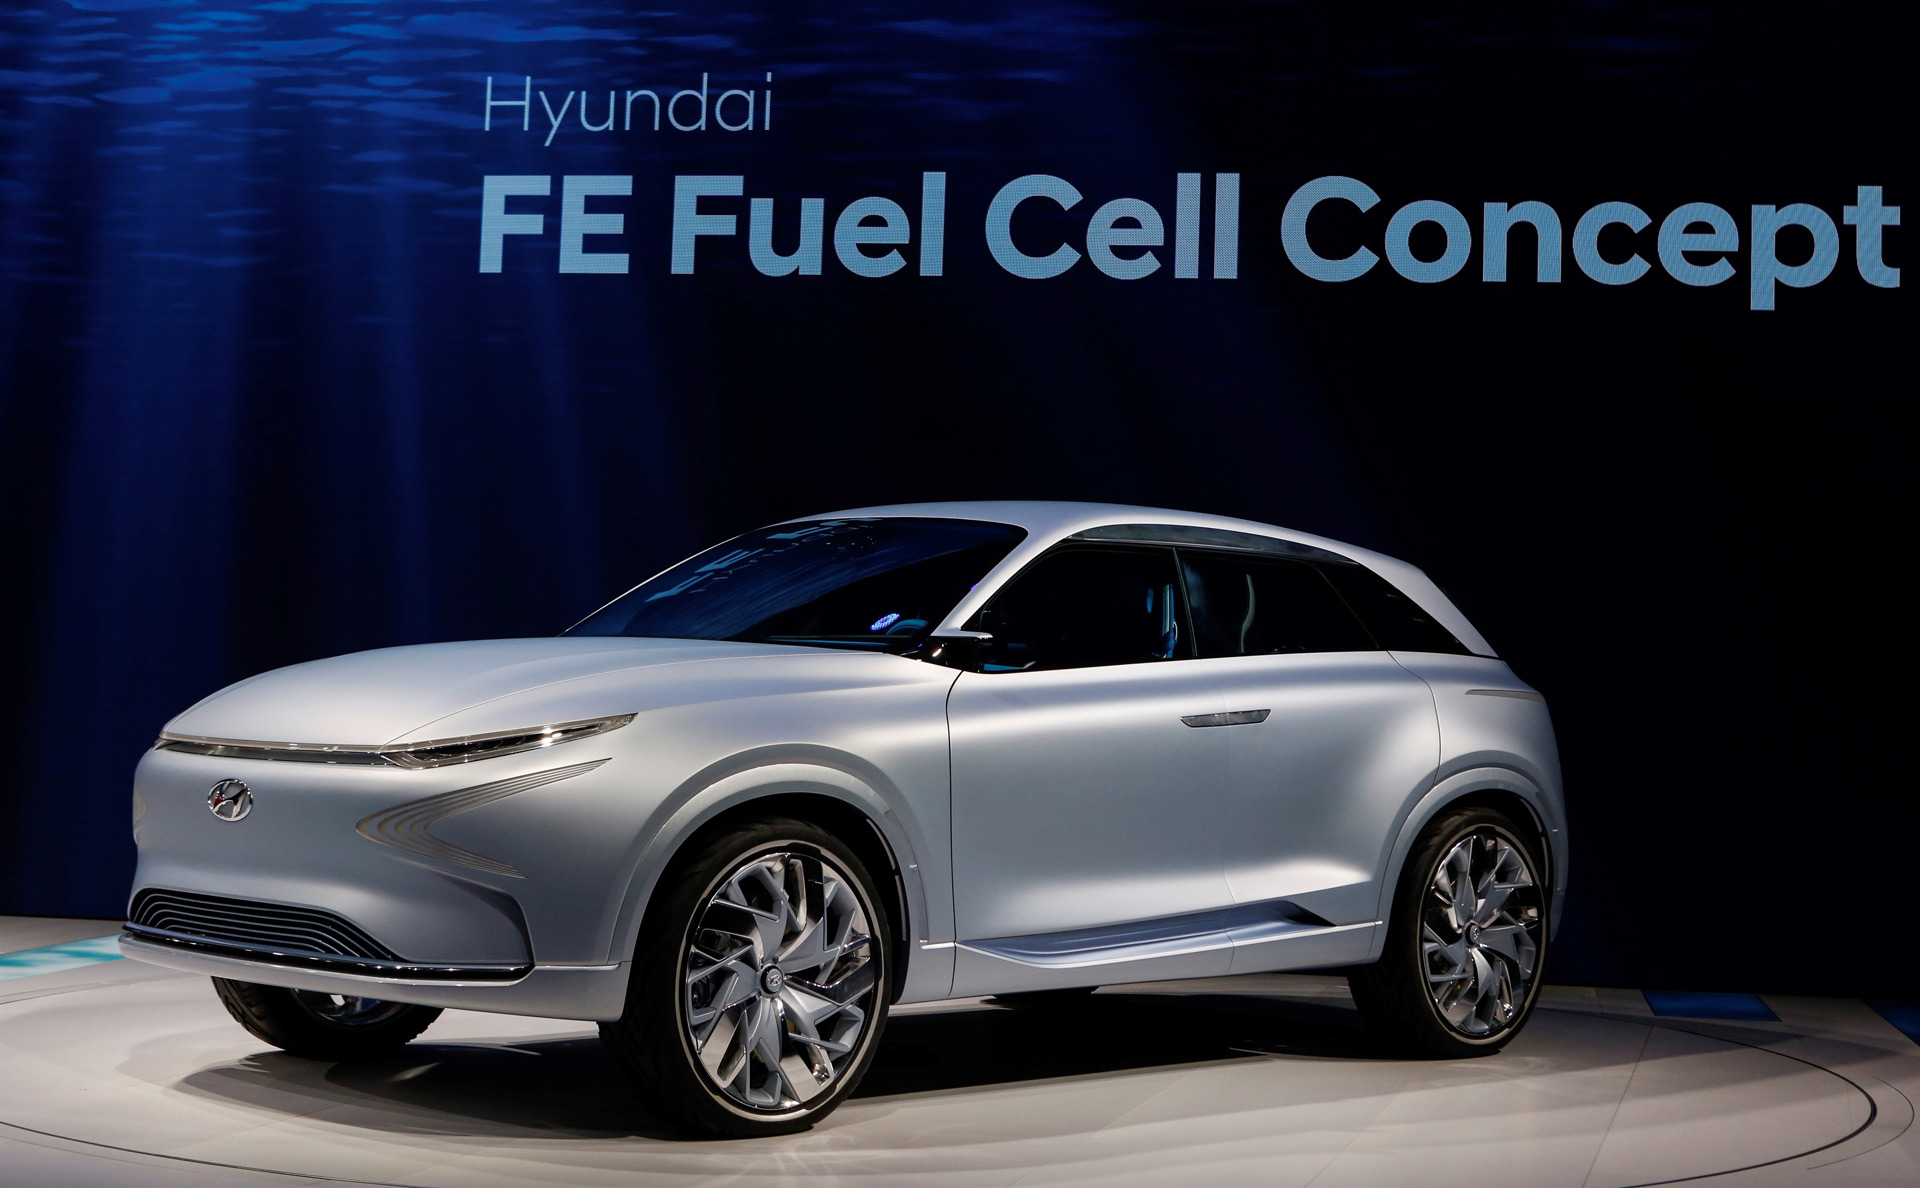 Hyundai FE Fuel Cell Concept Previews Hydrogen Powered SUV Coming In 2018